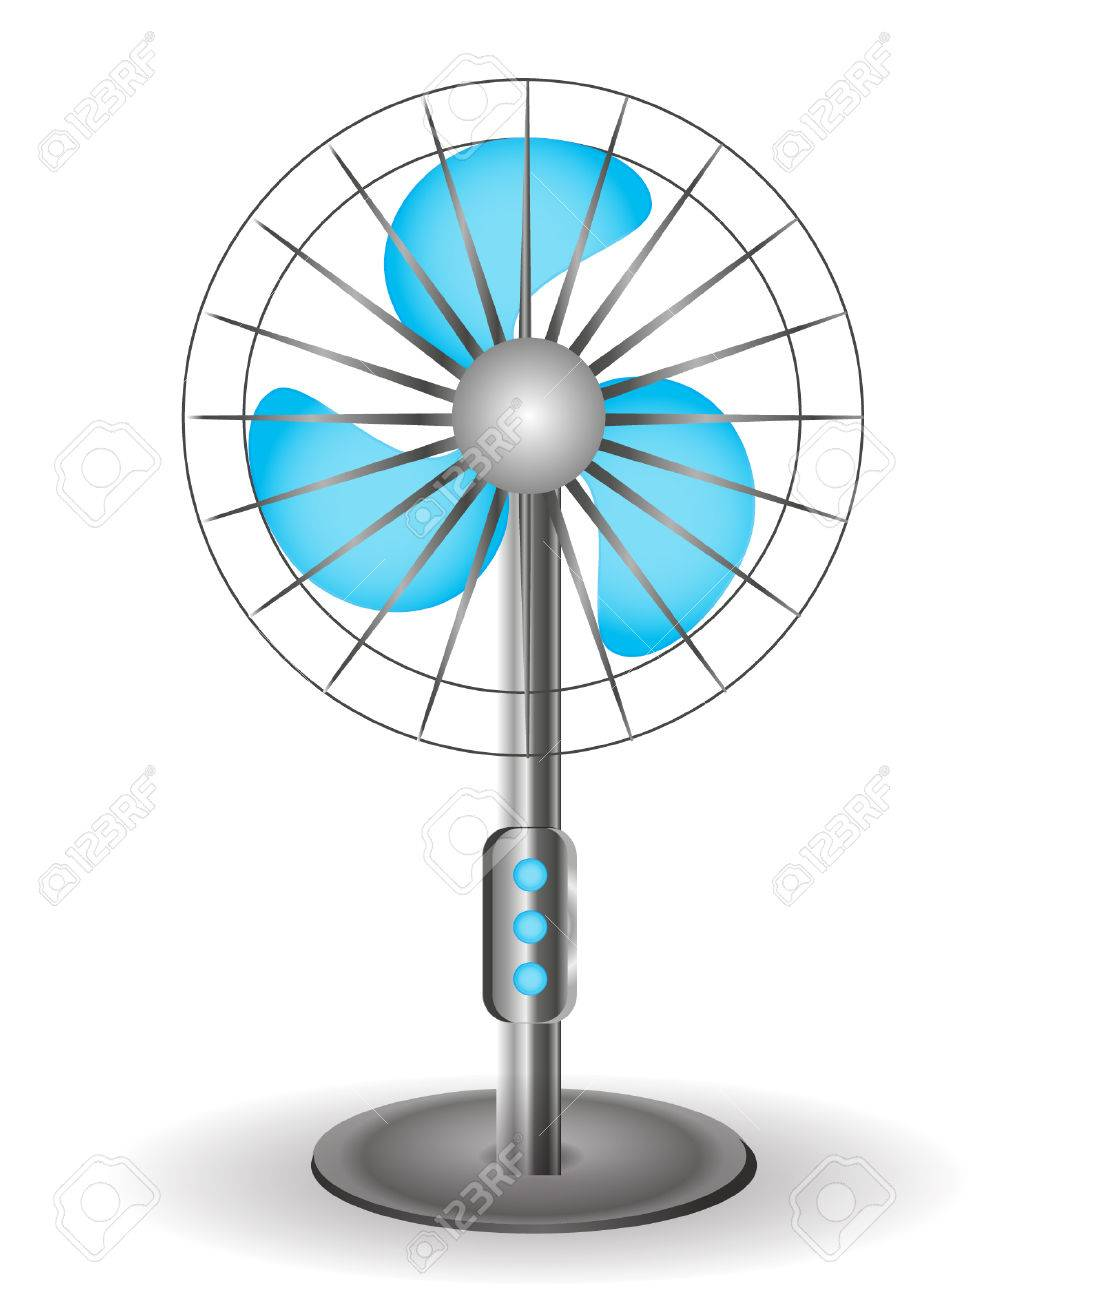 Table Fan Vector Illustration Royalty Free Cliparts Vectors And Diagram All Picture Stock 46180412